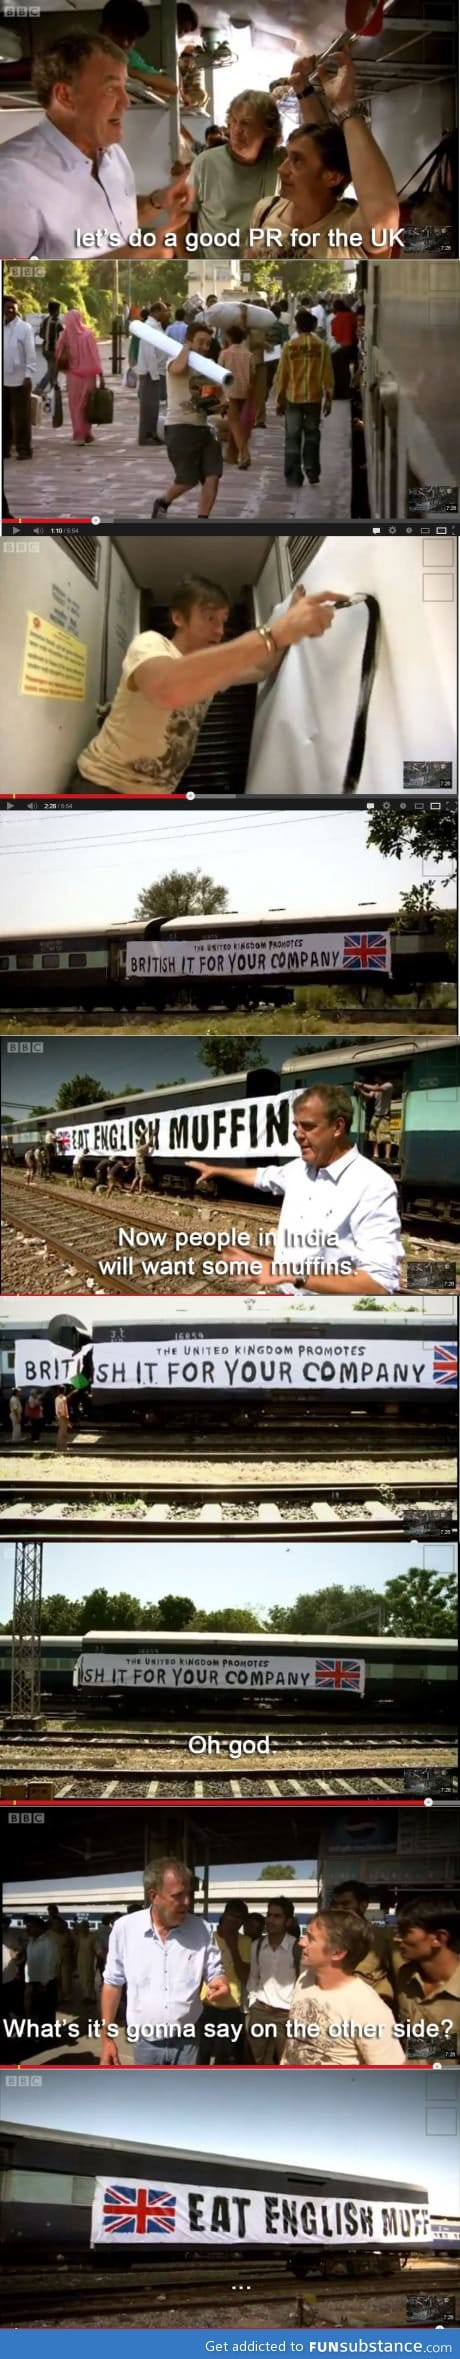 Top Gear does advertising